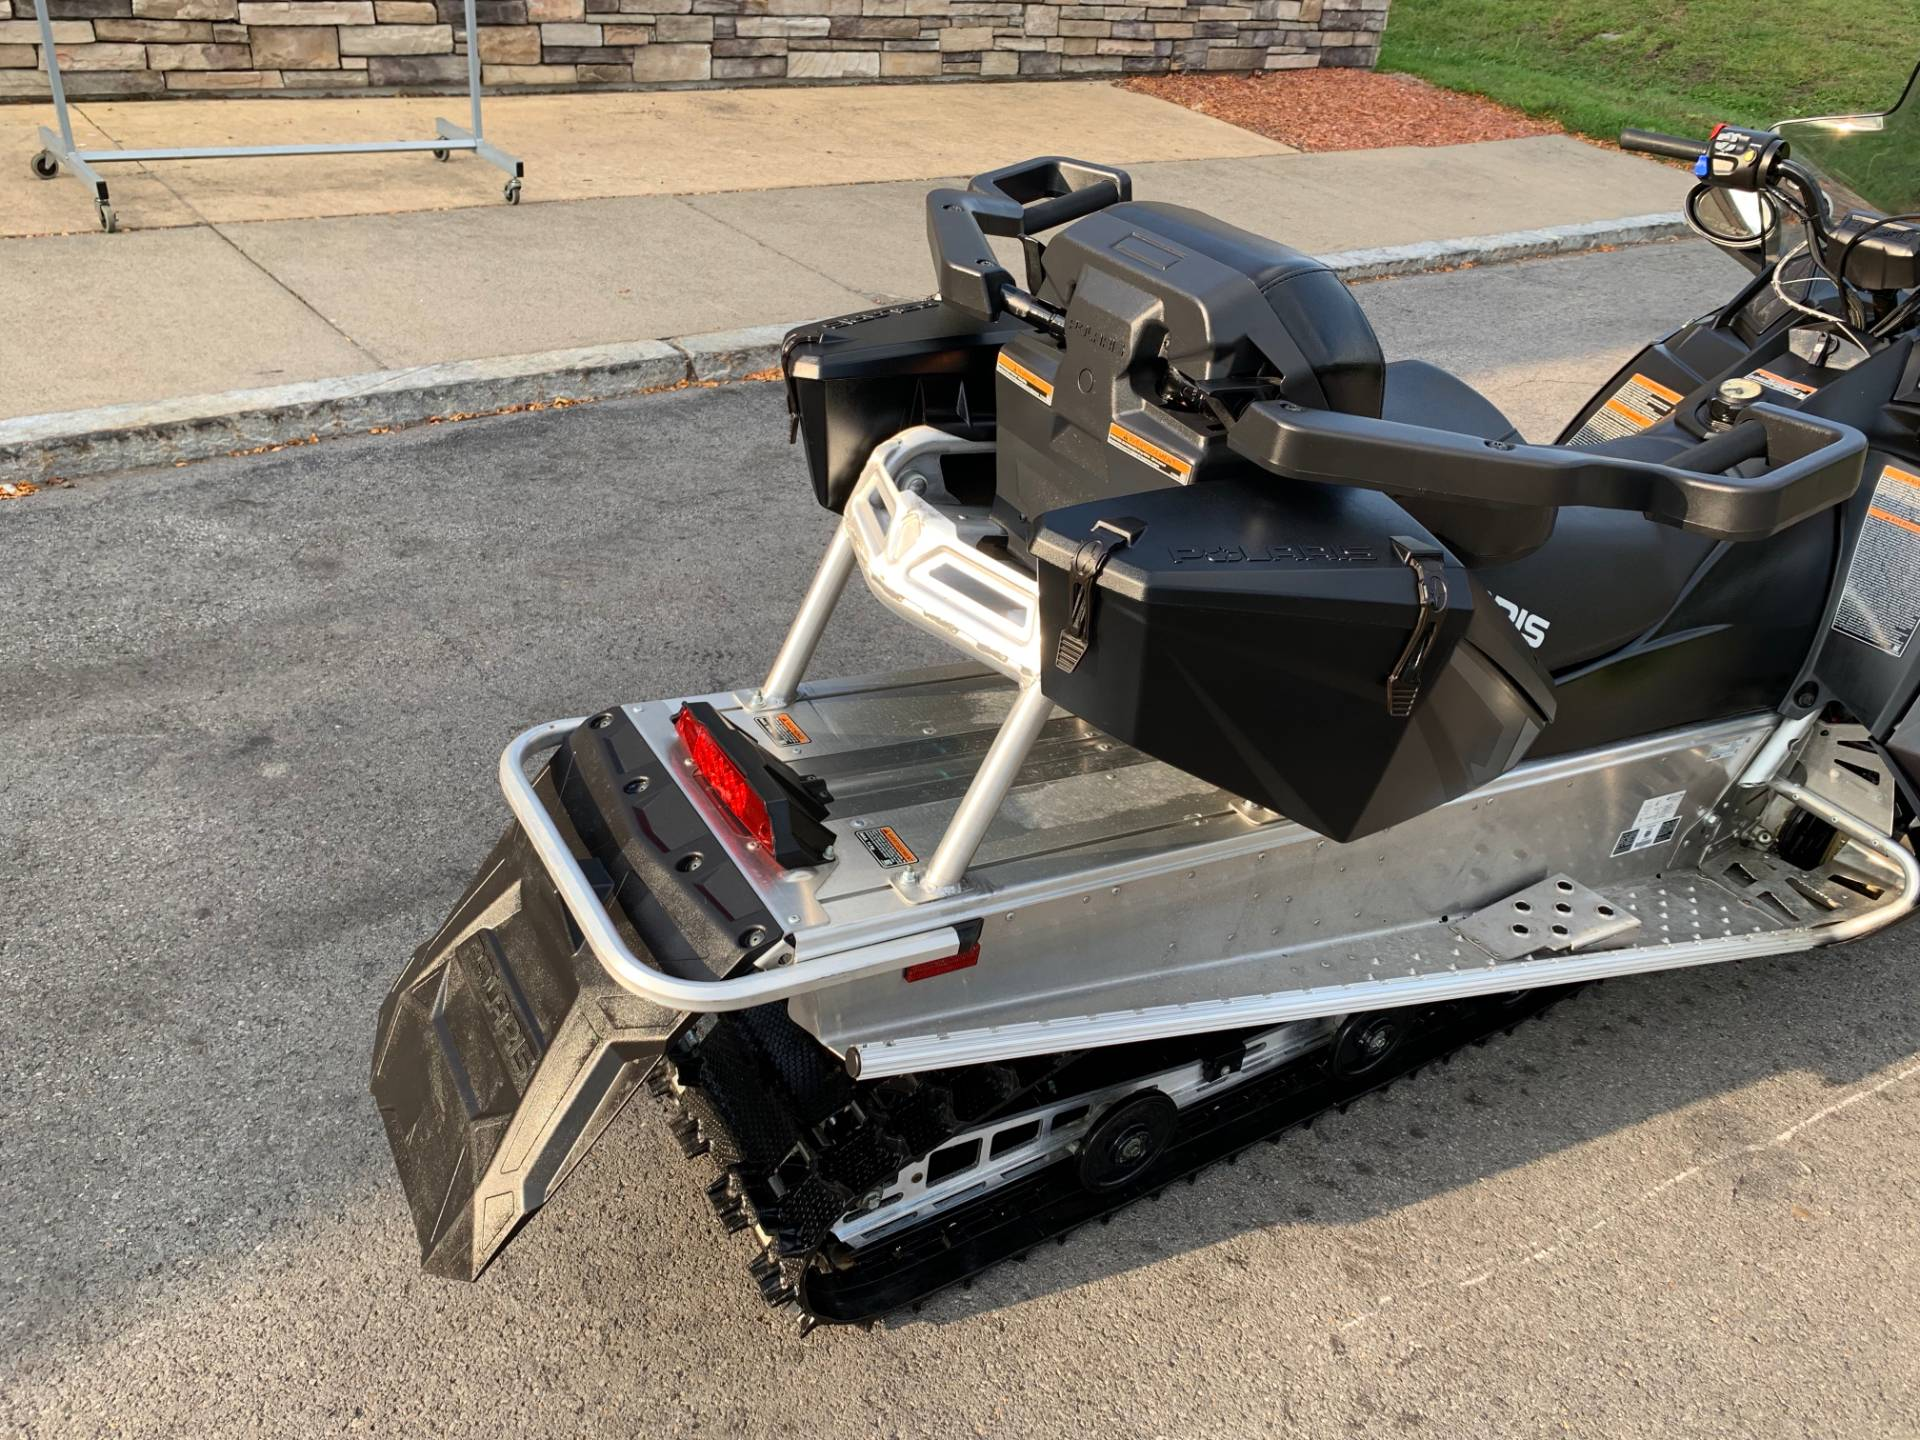 2019 Polaris 550 INDY Adventure 144 ES in Herkimer, New York - Photo 12